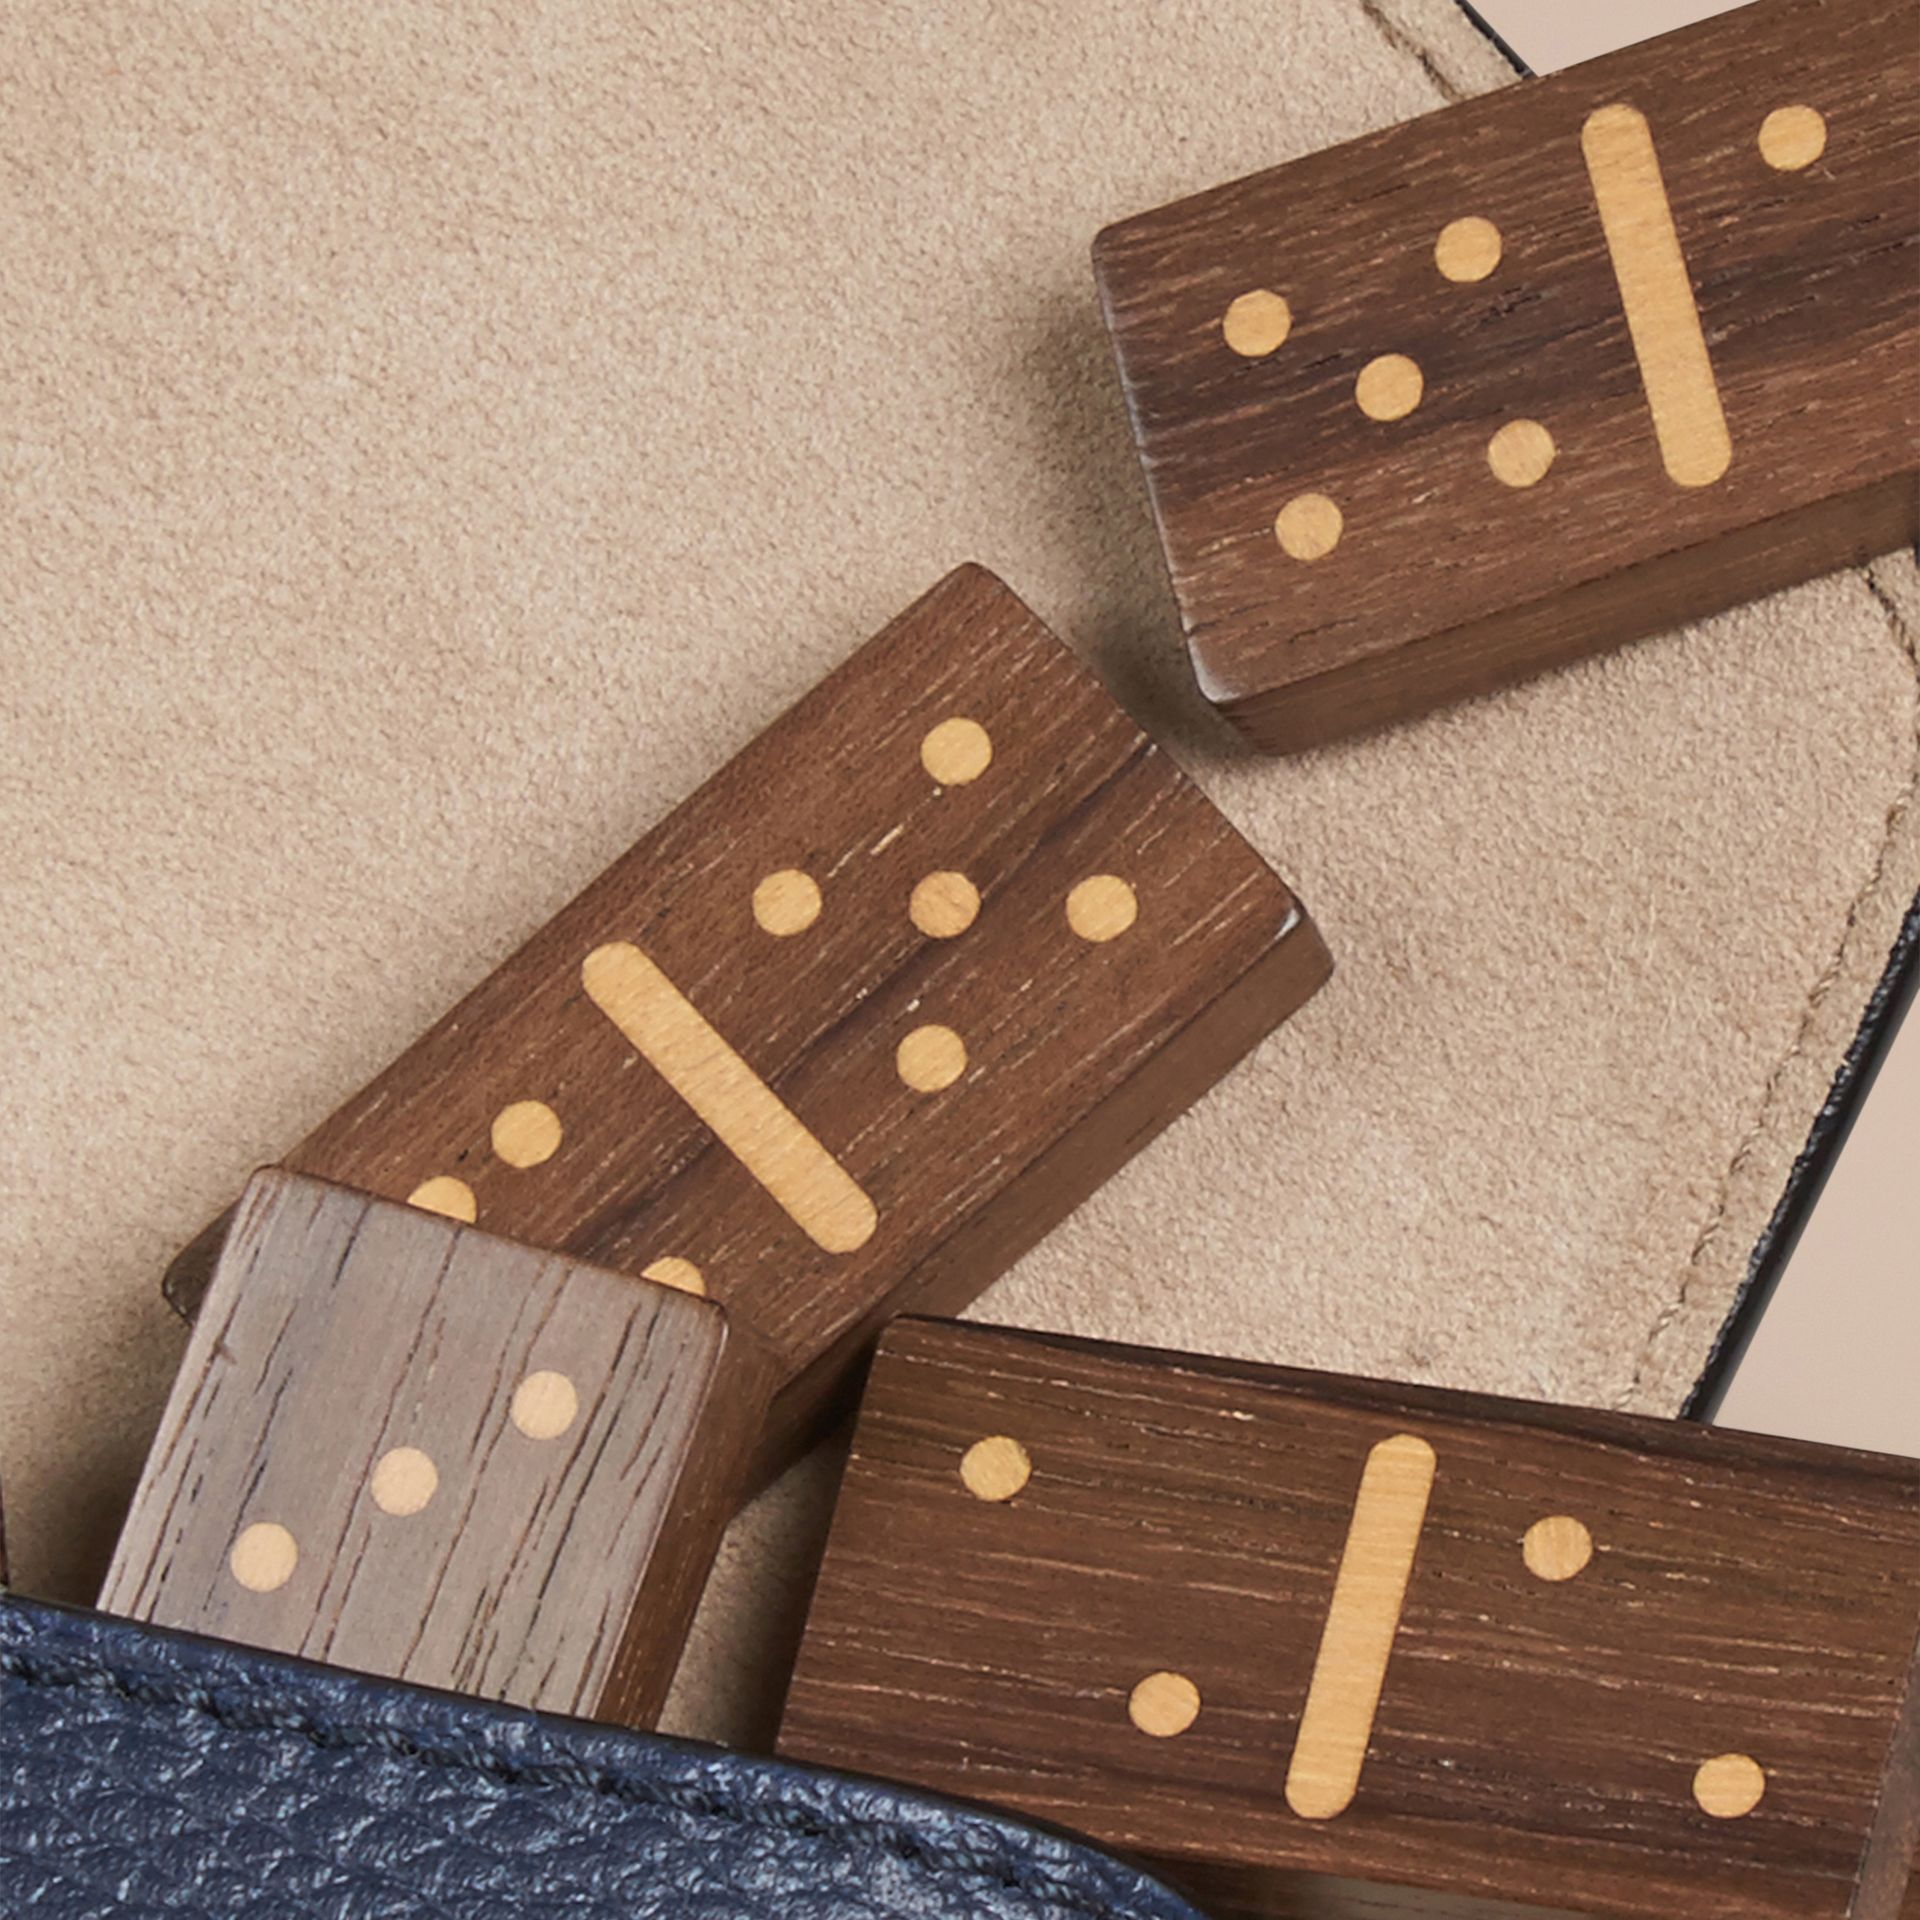 Wooden Domino Set with Grainy Leather Case Bright Navy - gallery image 2